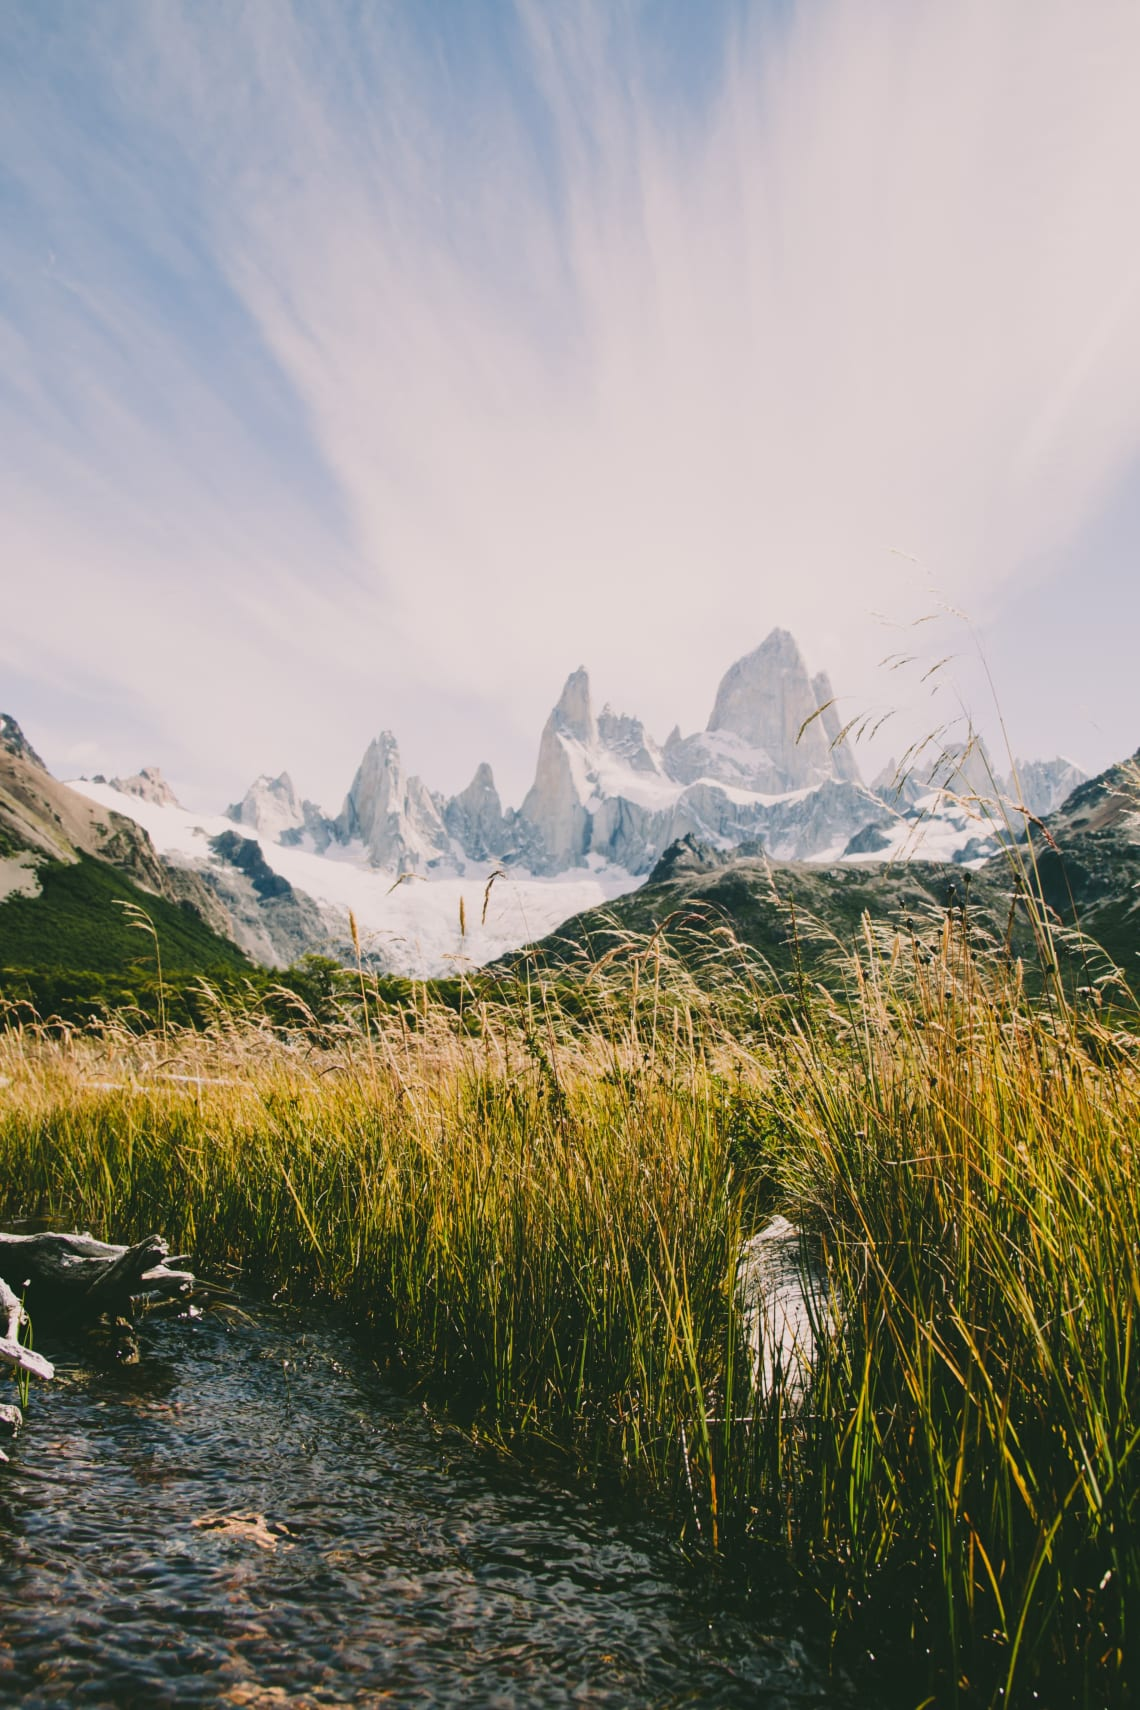 Inspirational places to travel:Los Glaciares National Park, Chile / Argentina